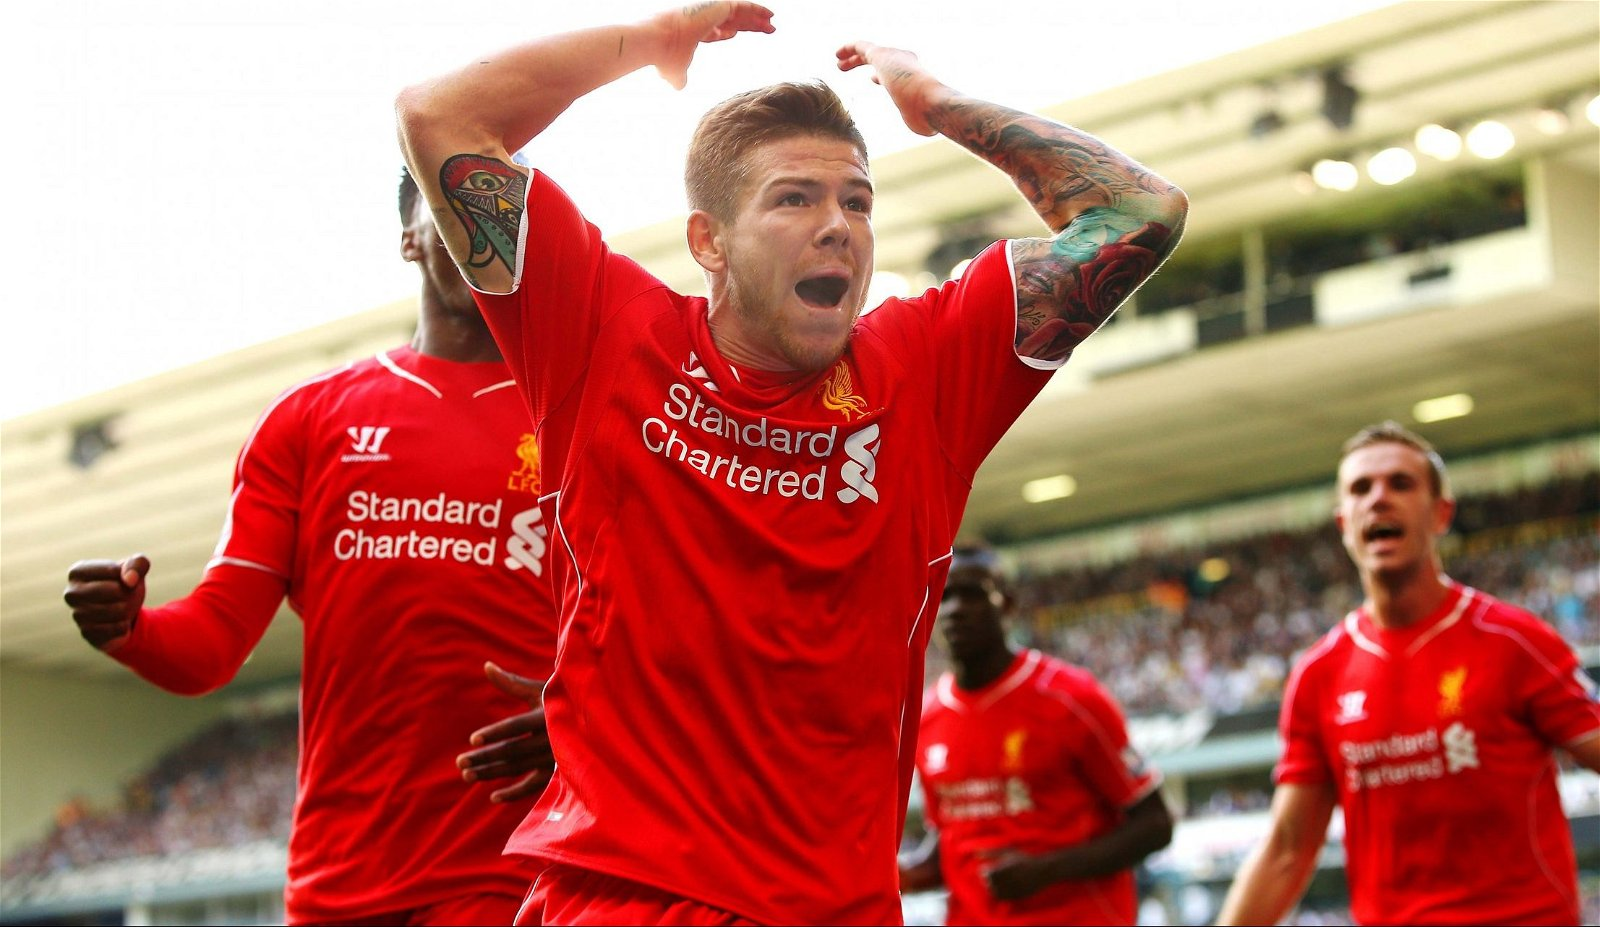 The Strike: Liverpool's squad has come a long way since Alberto Moreno's wonder goal against Spurs in 2014